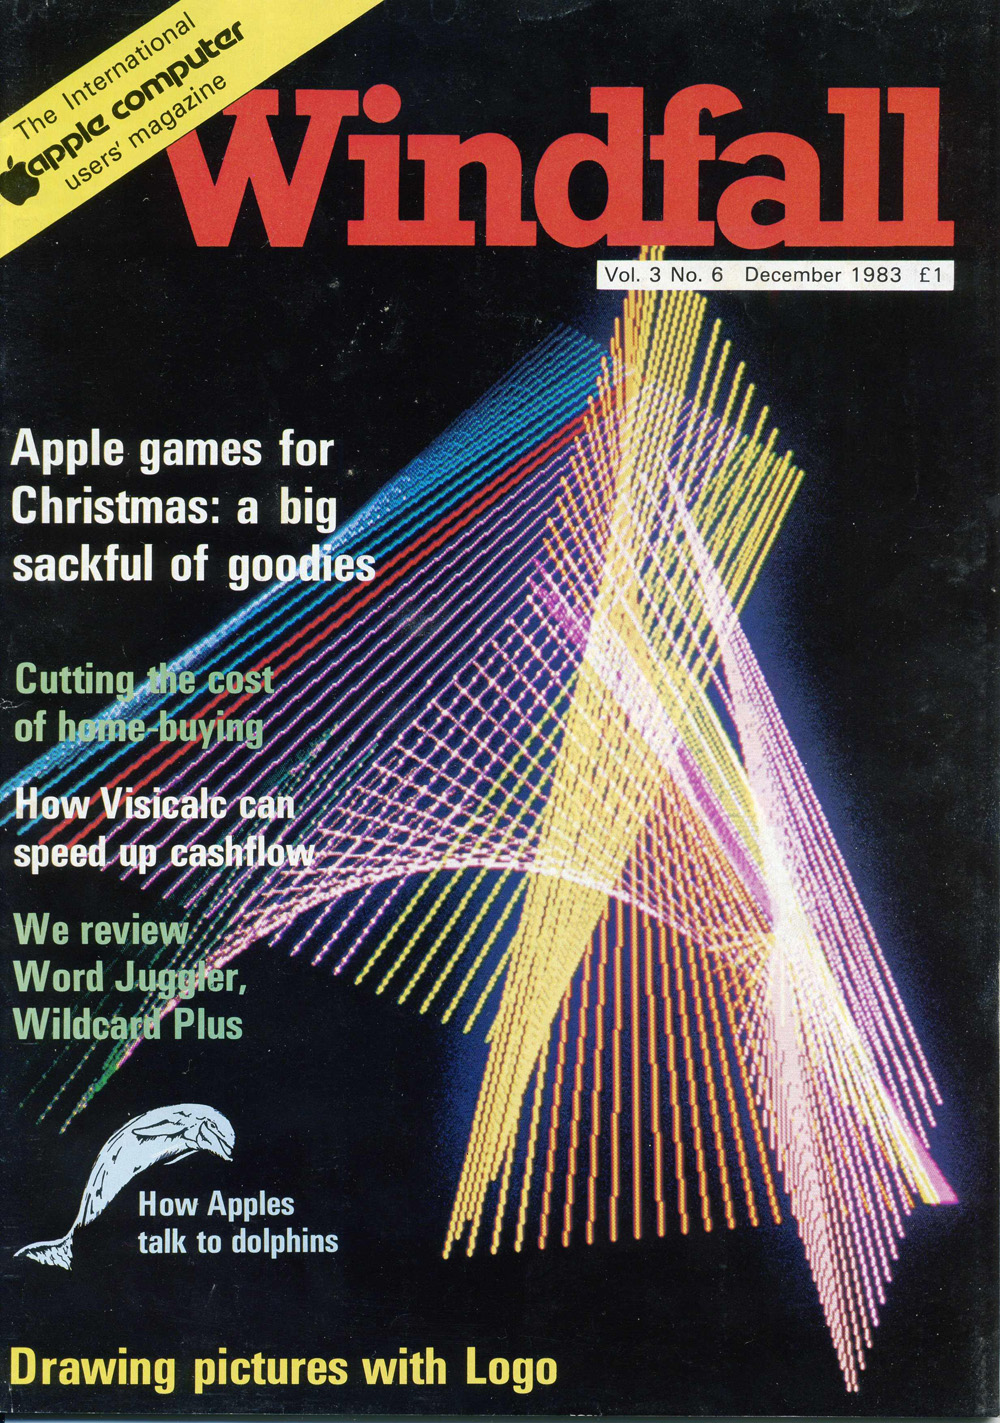 Windfall, Dec 1983